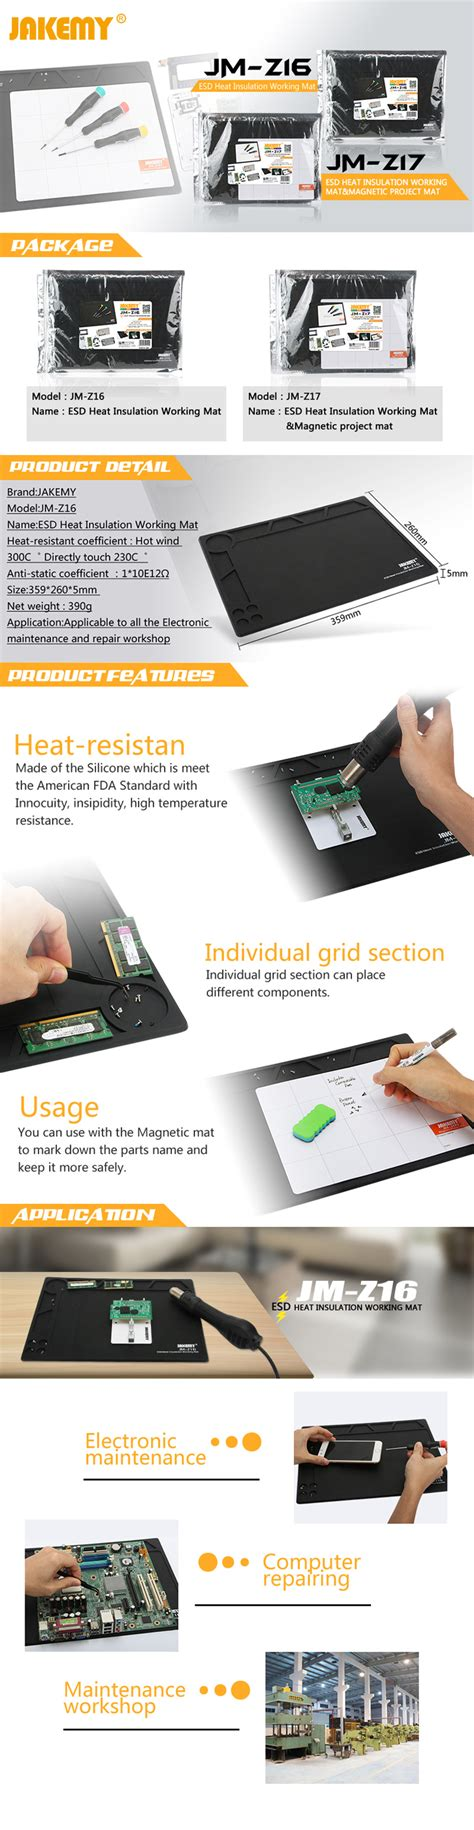 Jakemy Esd Heat Insulation Working Mat With Magnetic Jm Z17 jakemy jm z16 esd heat insulation working mat tvc mall